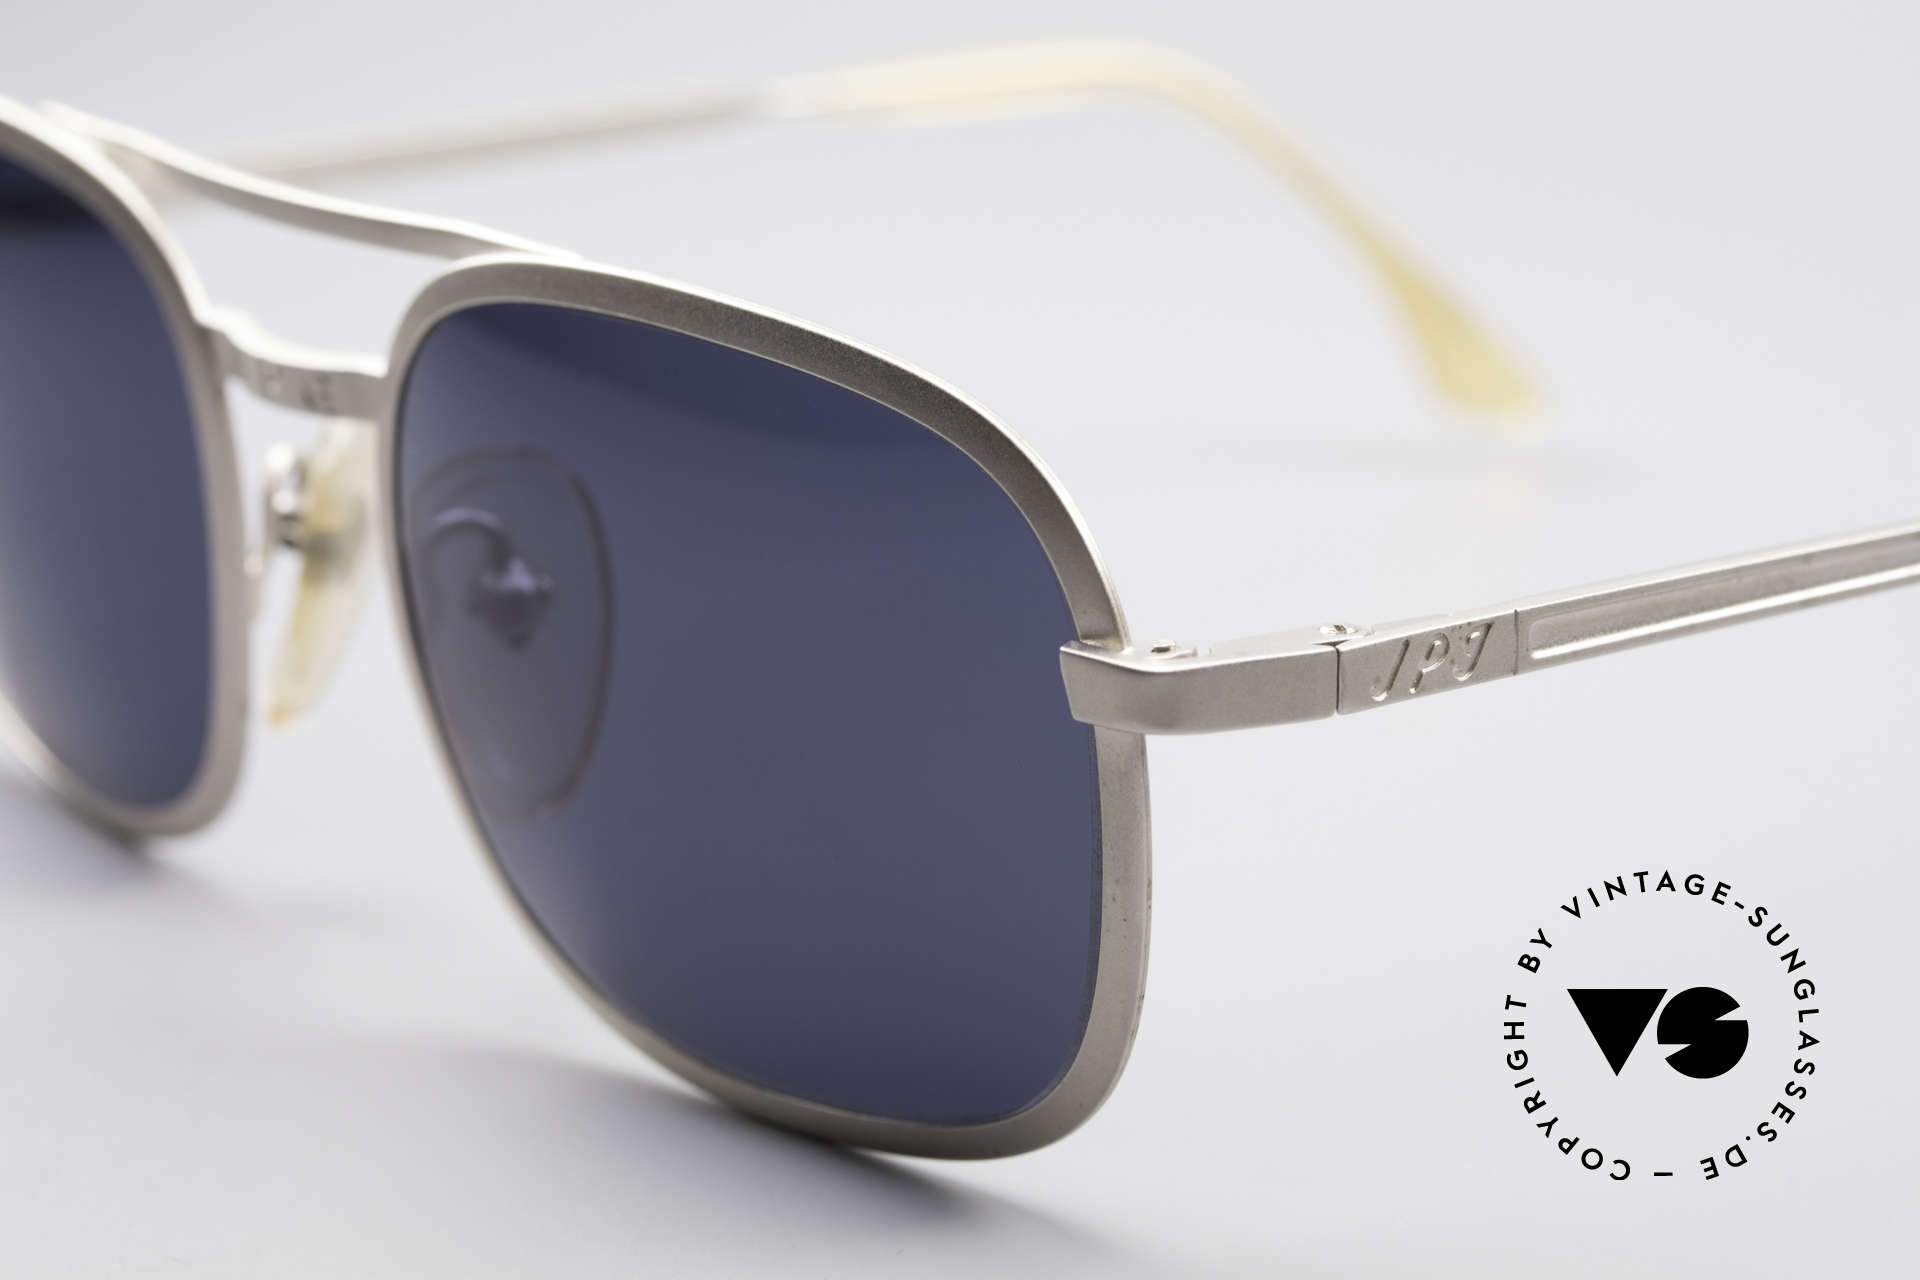 Jean Paul Gaultier 56-1172 Classic Timeless Sunglasses, dull silver frame with deep blue sun lenses (100% UV), Made for Men